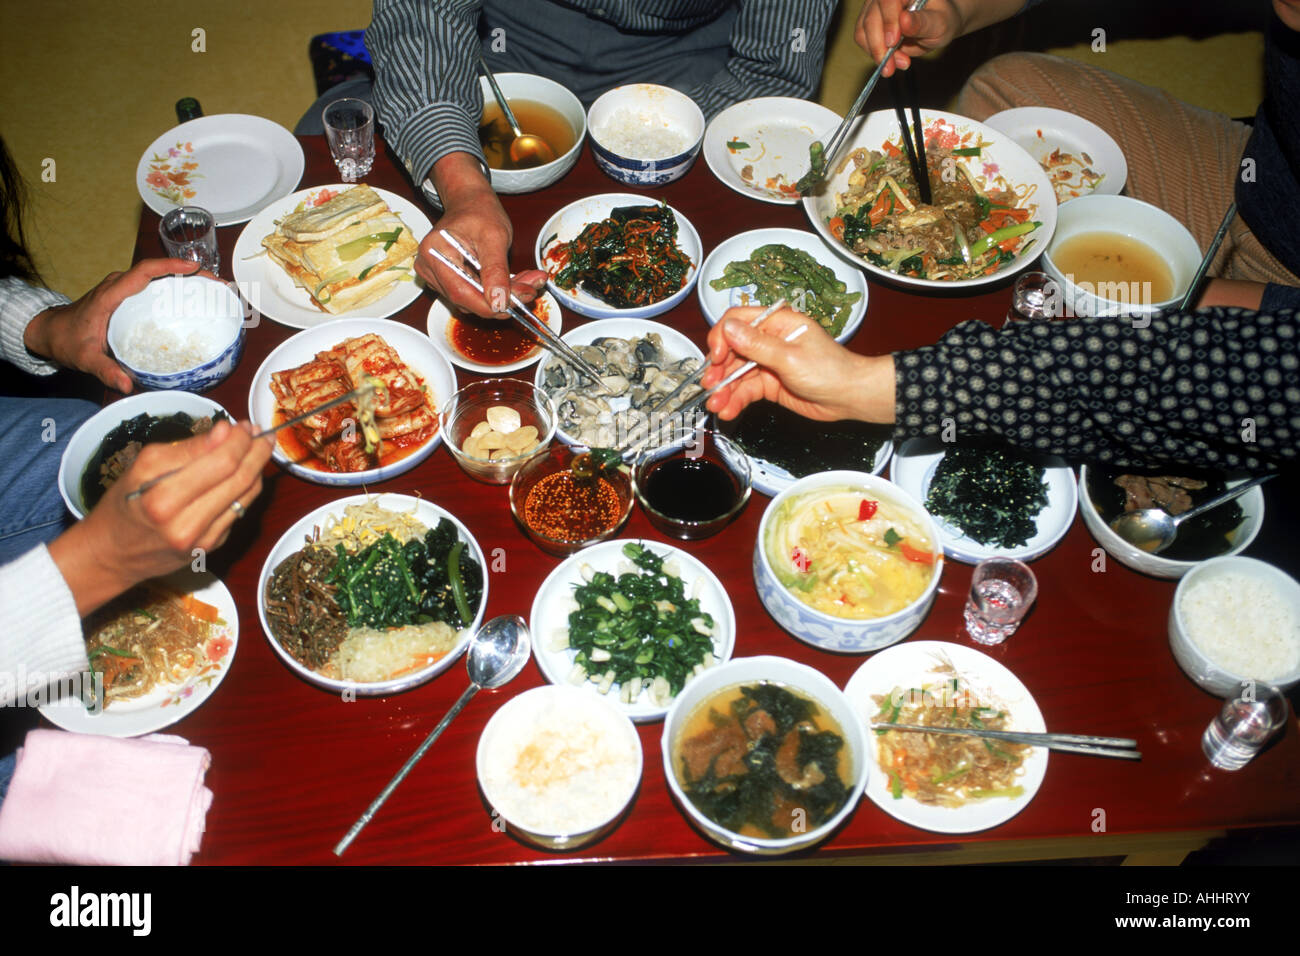 Dinner table with food - Family Sitting At Dinner Table Eating Variety Home Made Korean Foods